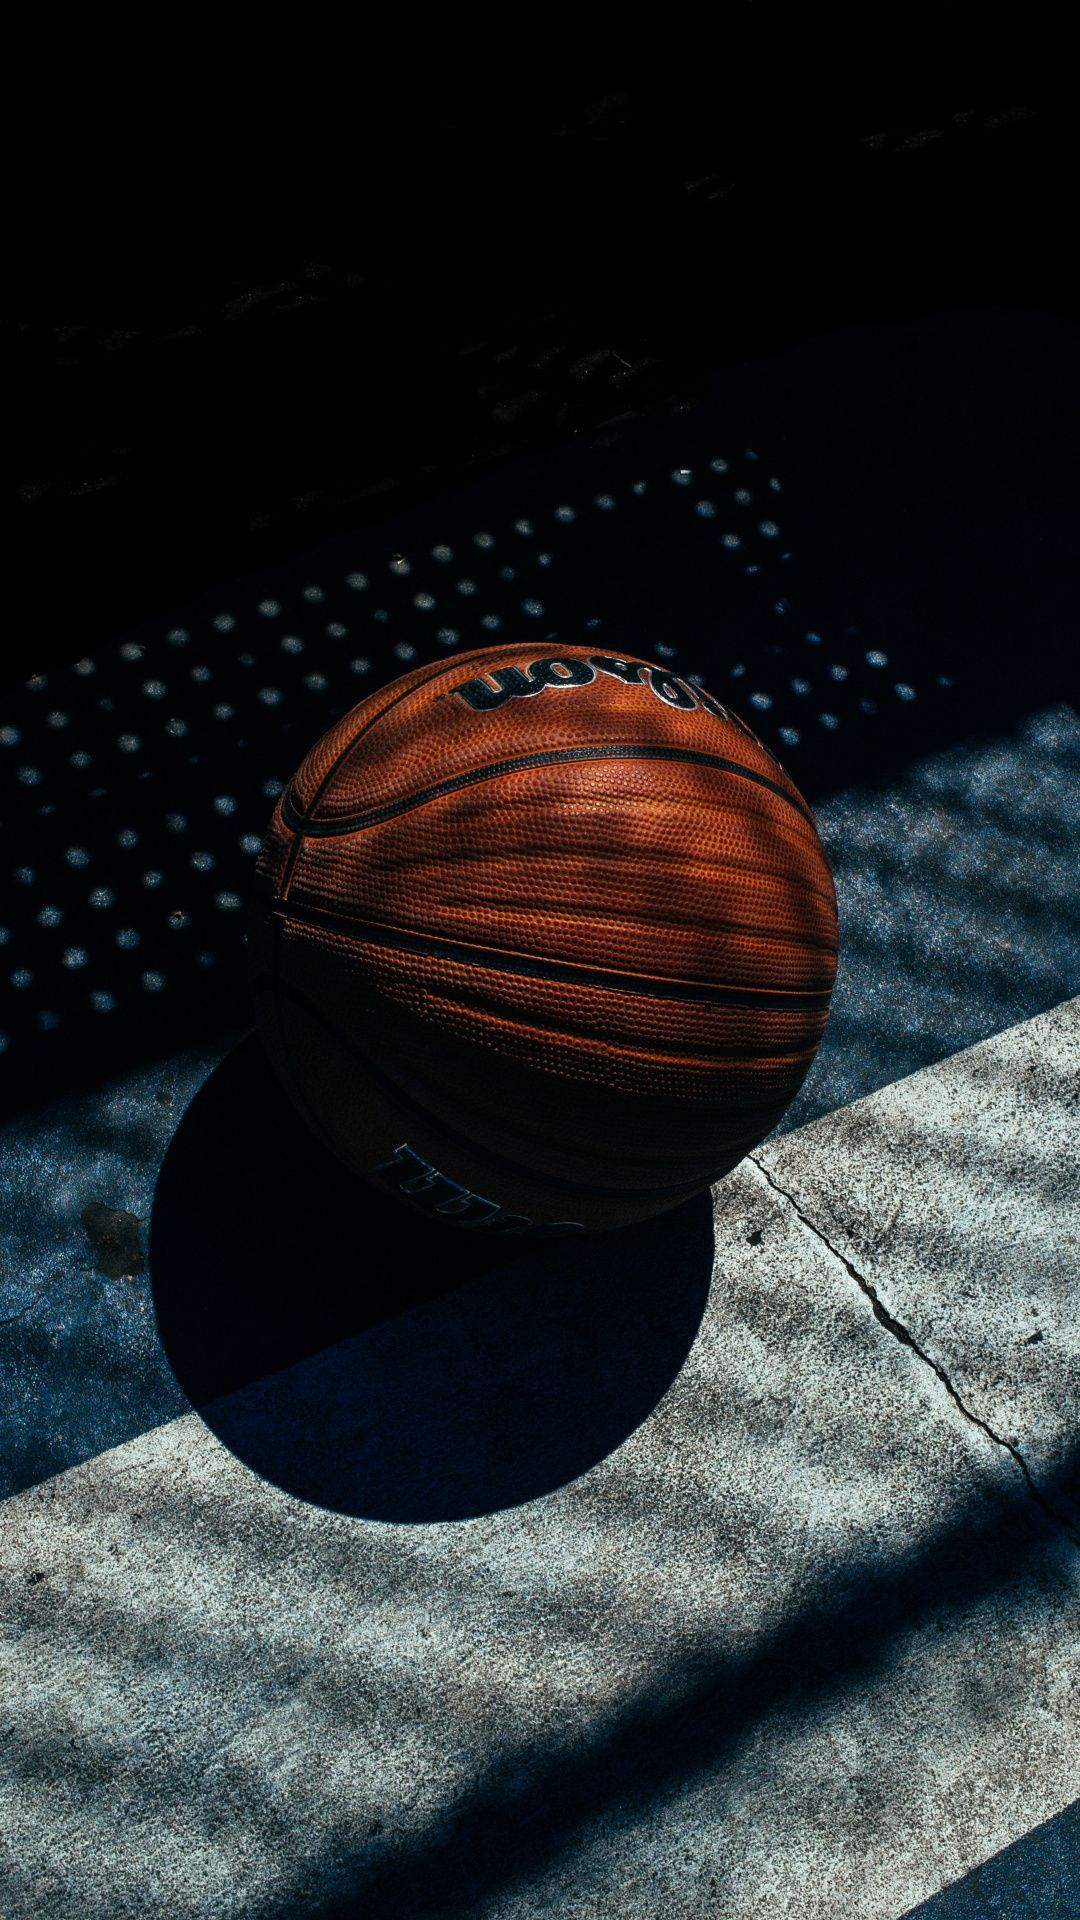 Wallpapers Space Basketball Basketball Player Wood Brown The Best In Celebrity Style The Late Basketball Wallpaper Basketball Photography Basketball Ball